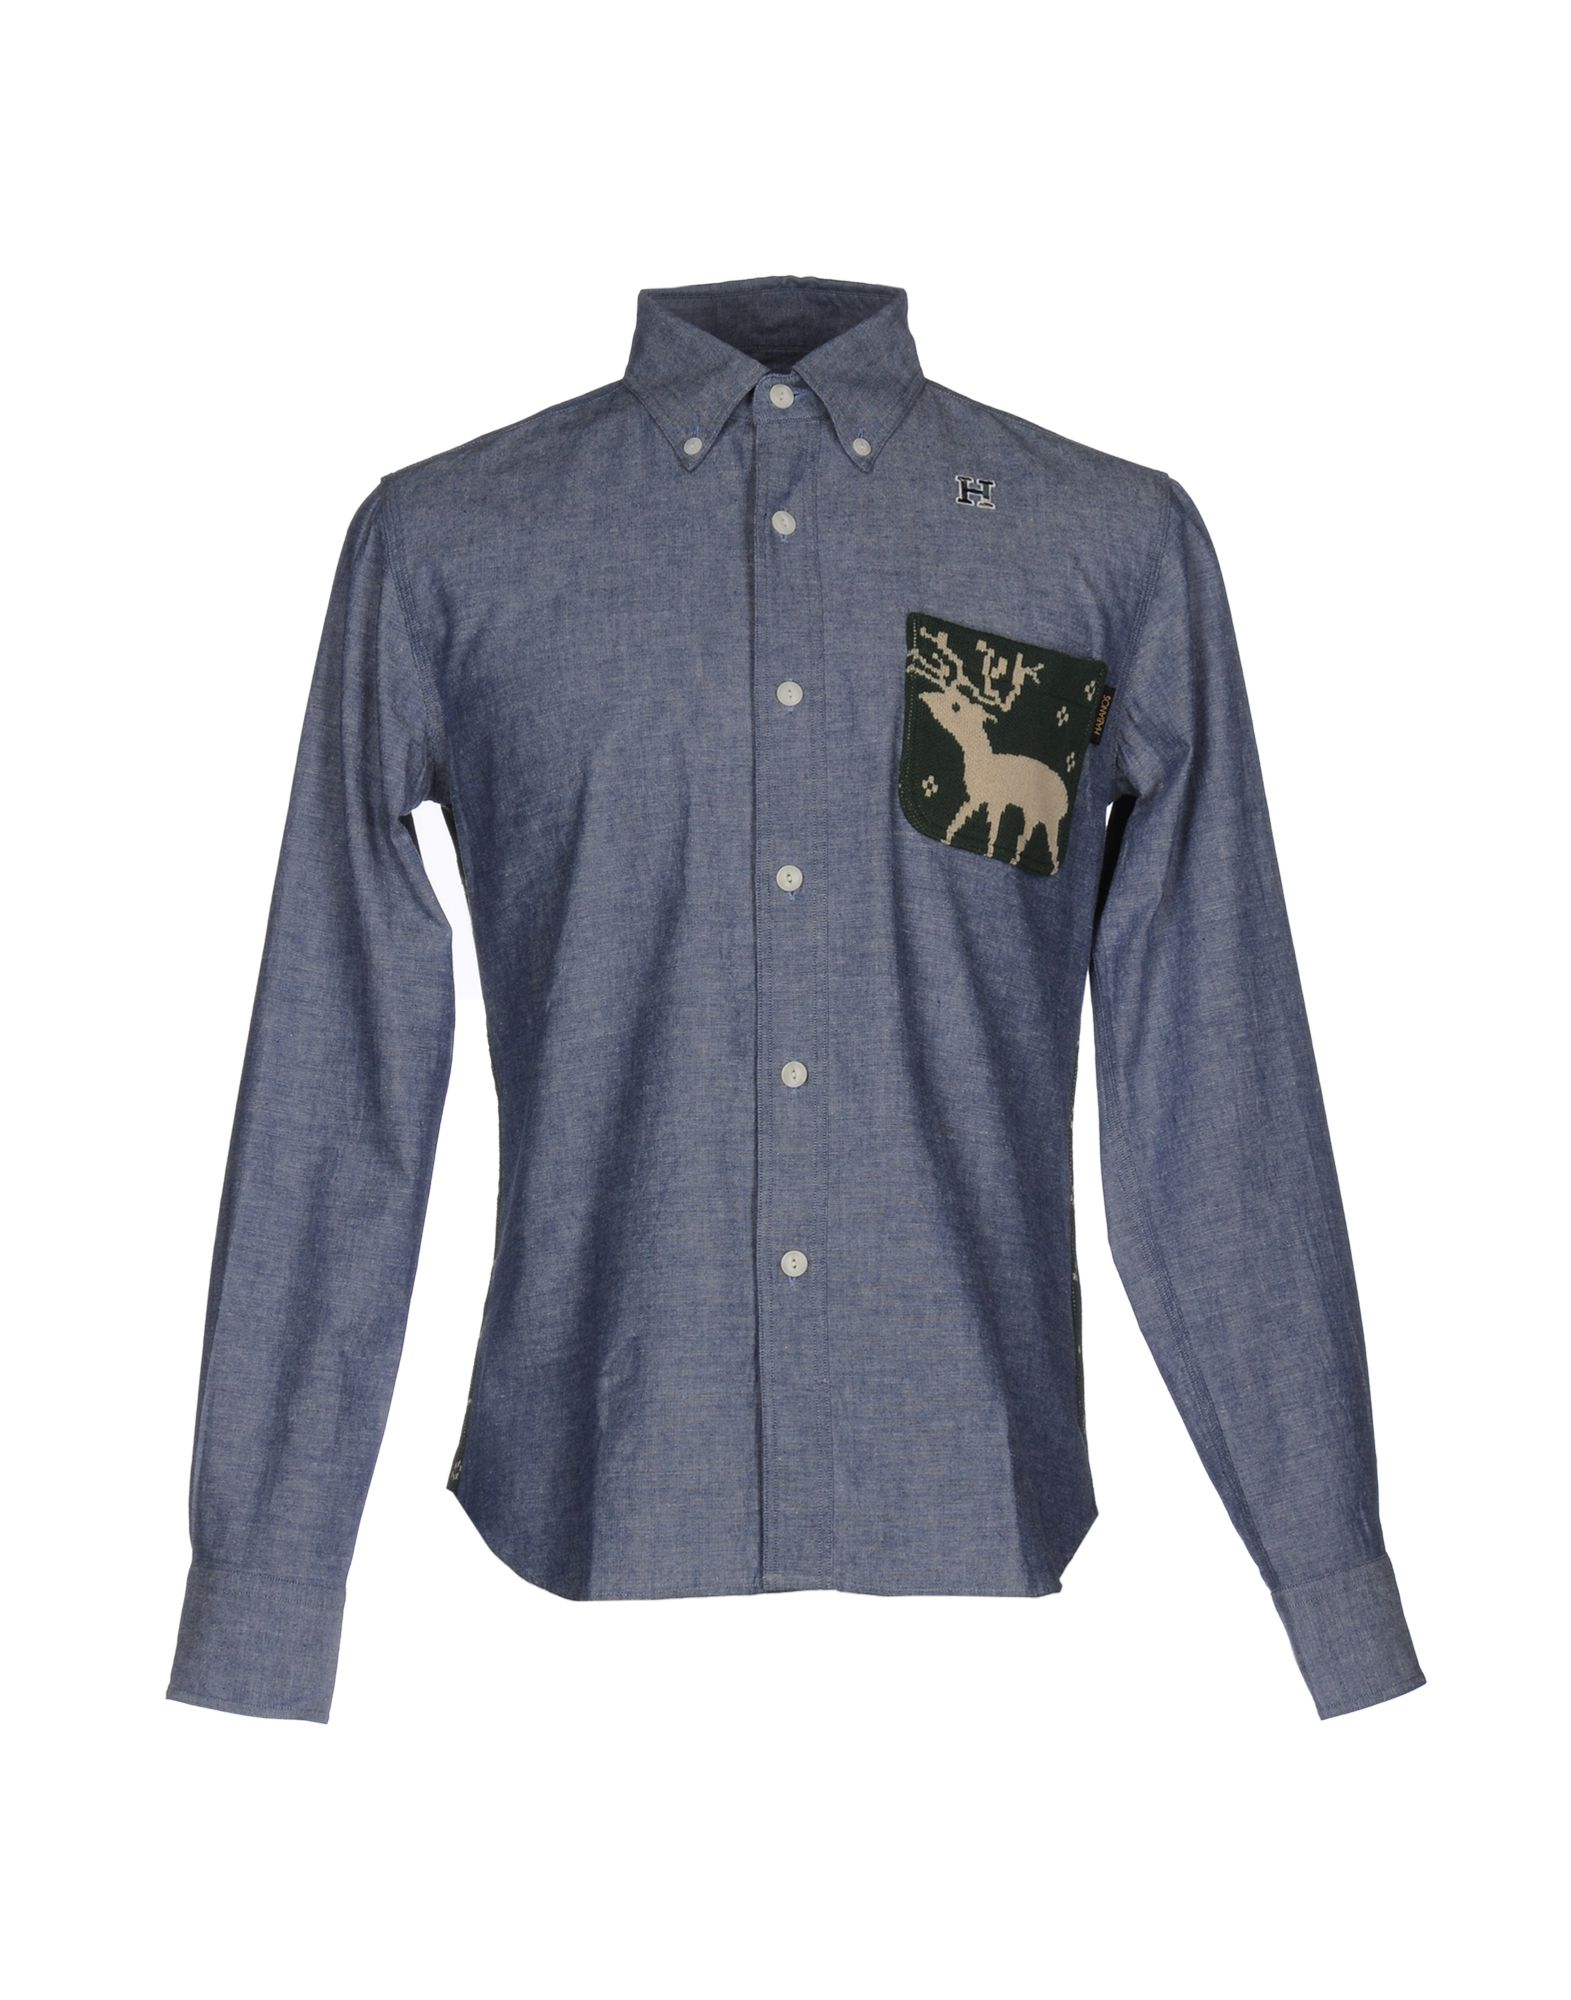 HBNS Solid Color Shirt in Blue